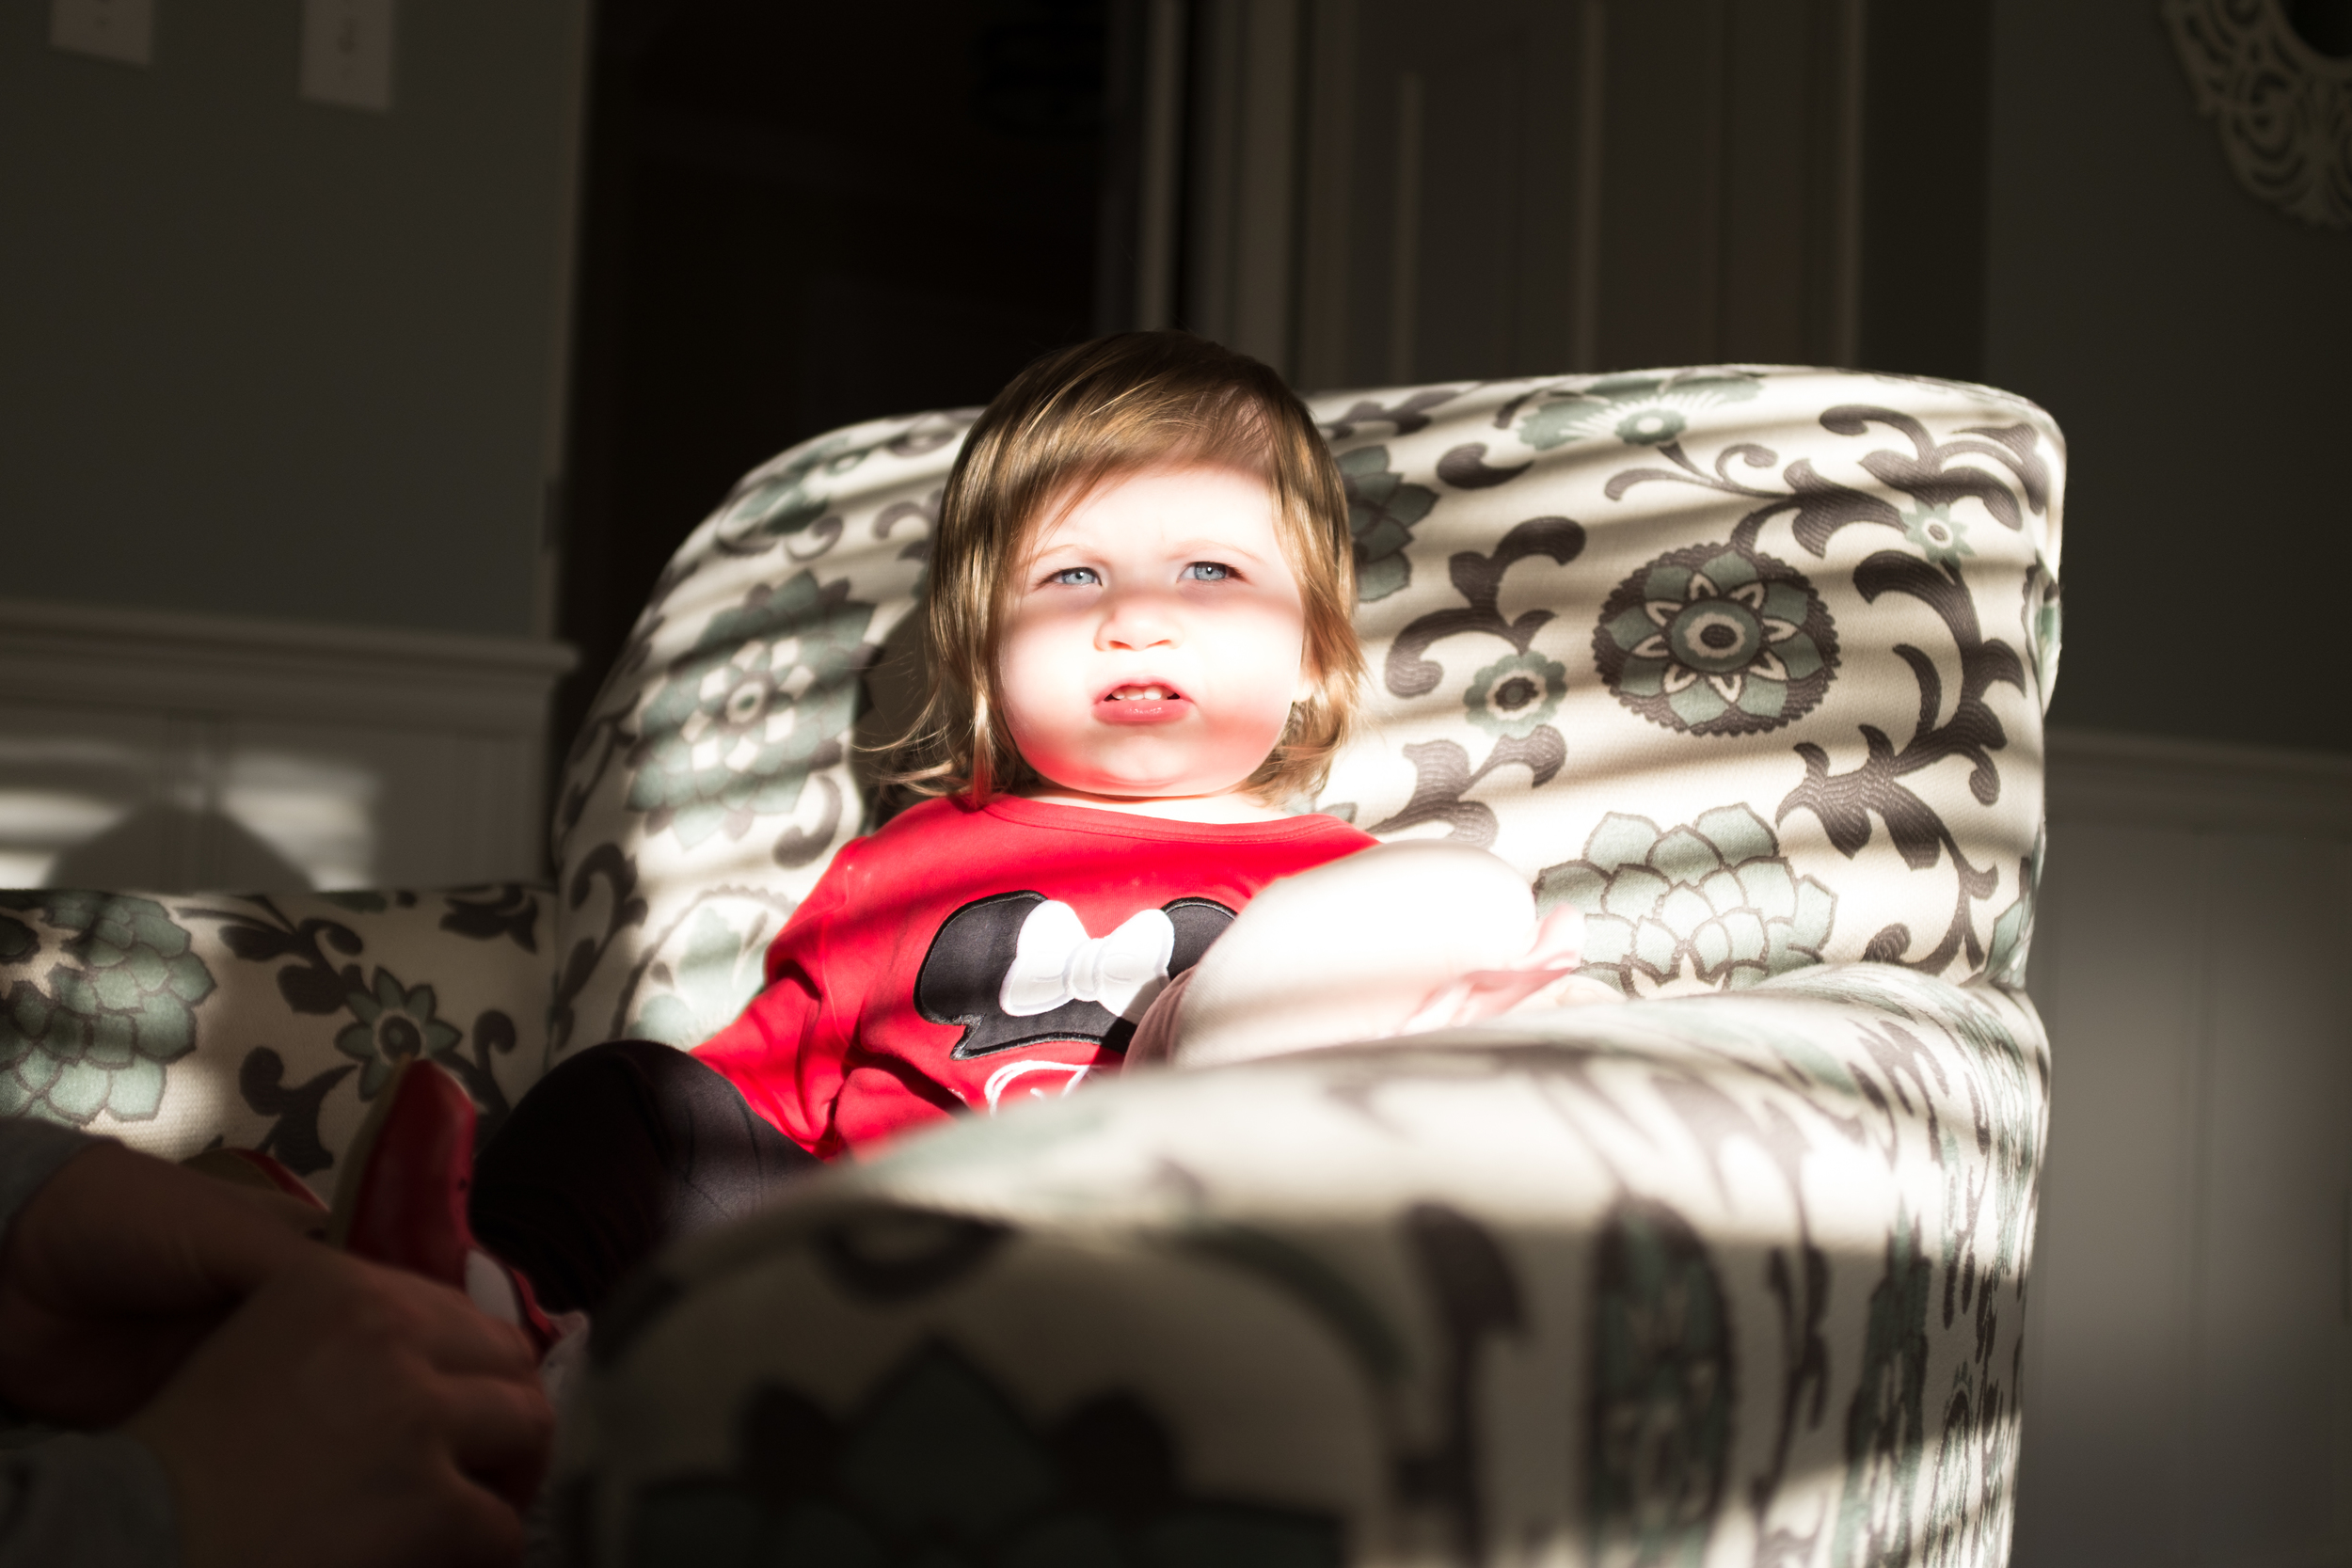 Lillian the Sun Gazer.   FujiFilm x100T, 23mm fixed lens, 1/420s, f2.0, ISO 200